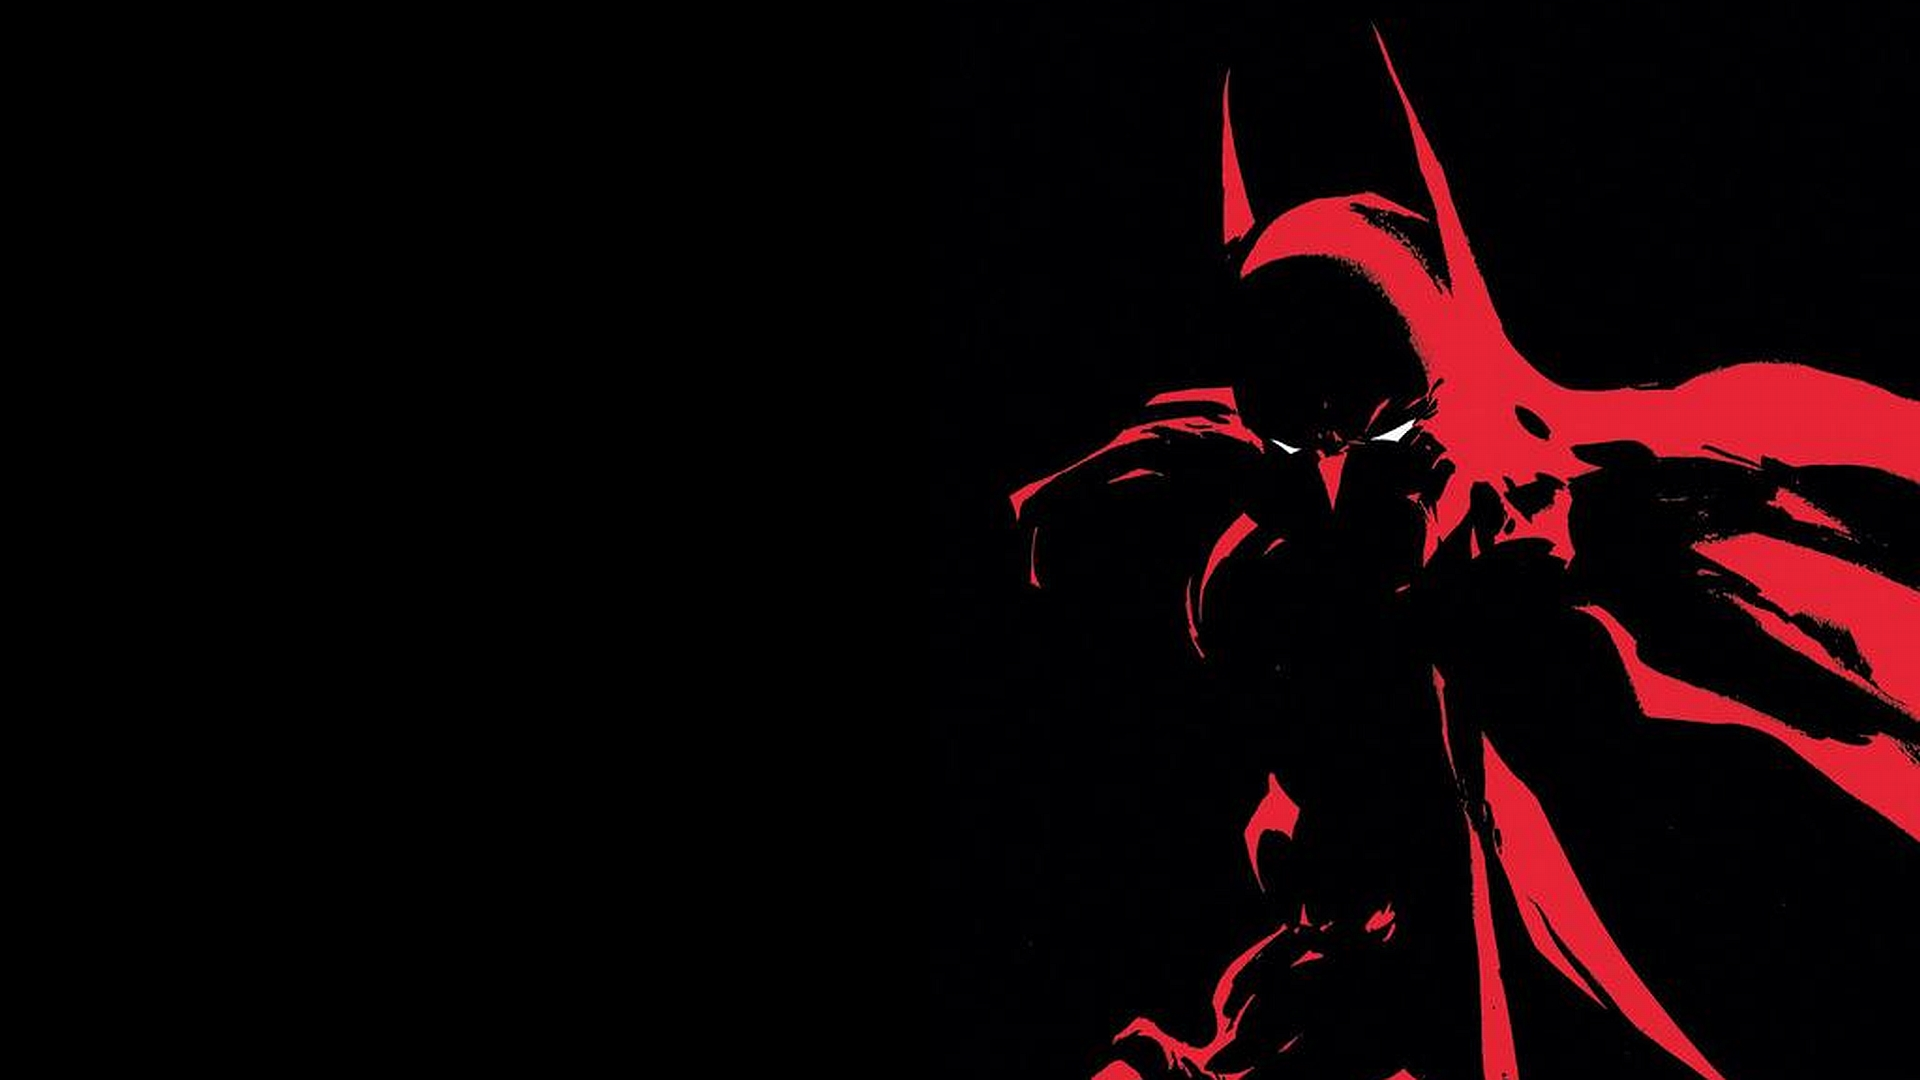 Comics archives 8 en 11 pchdwallpaper batman in red and black voltagebd Image collections